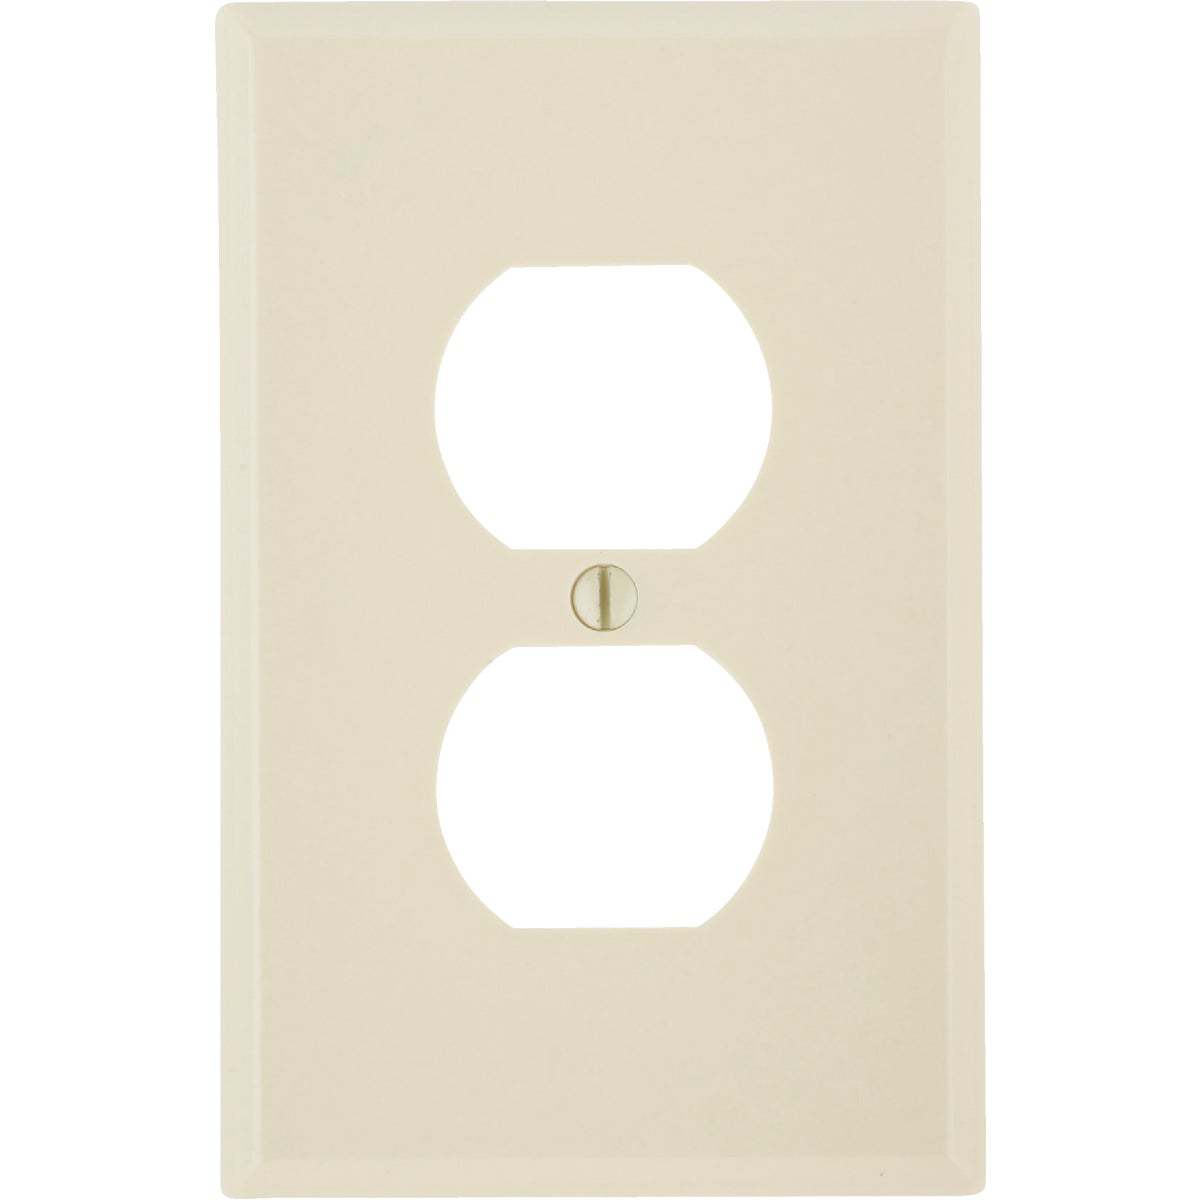 IV DUPLEX WALL PLATE - 020-80503-I by Leviton Mfg Co